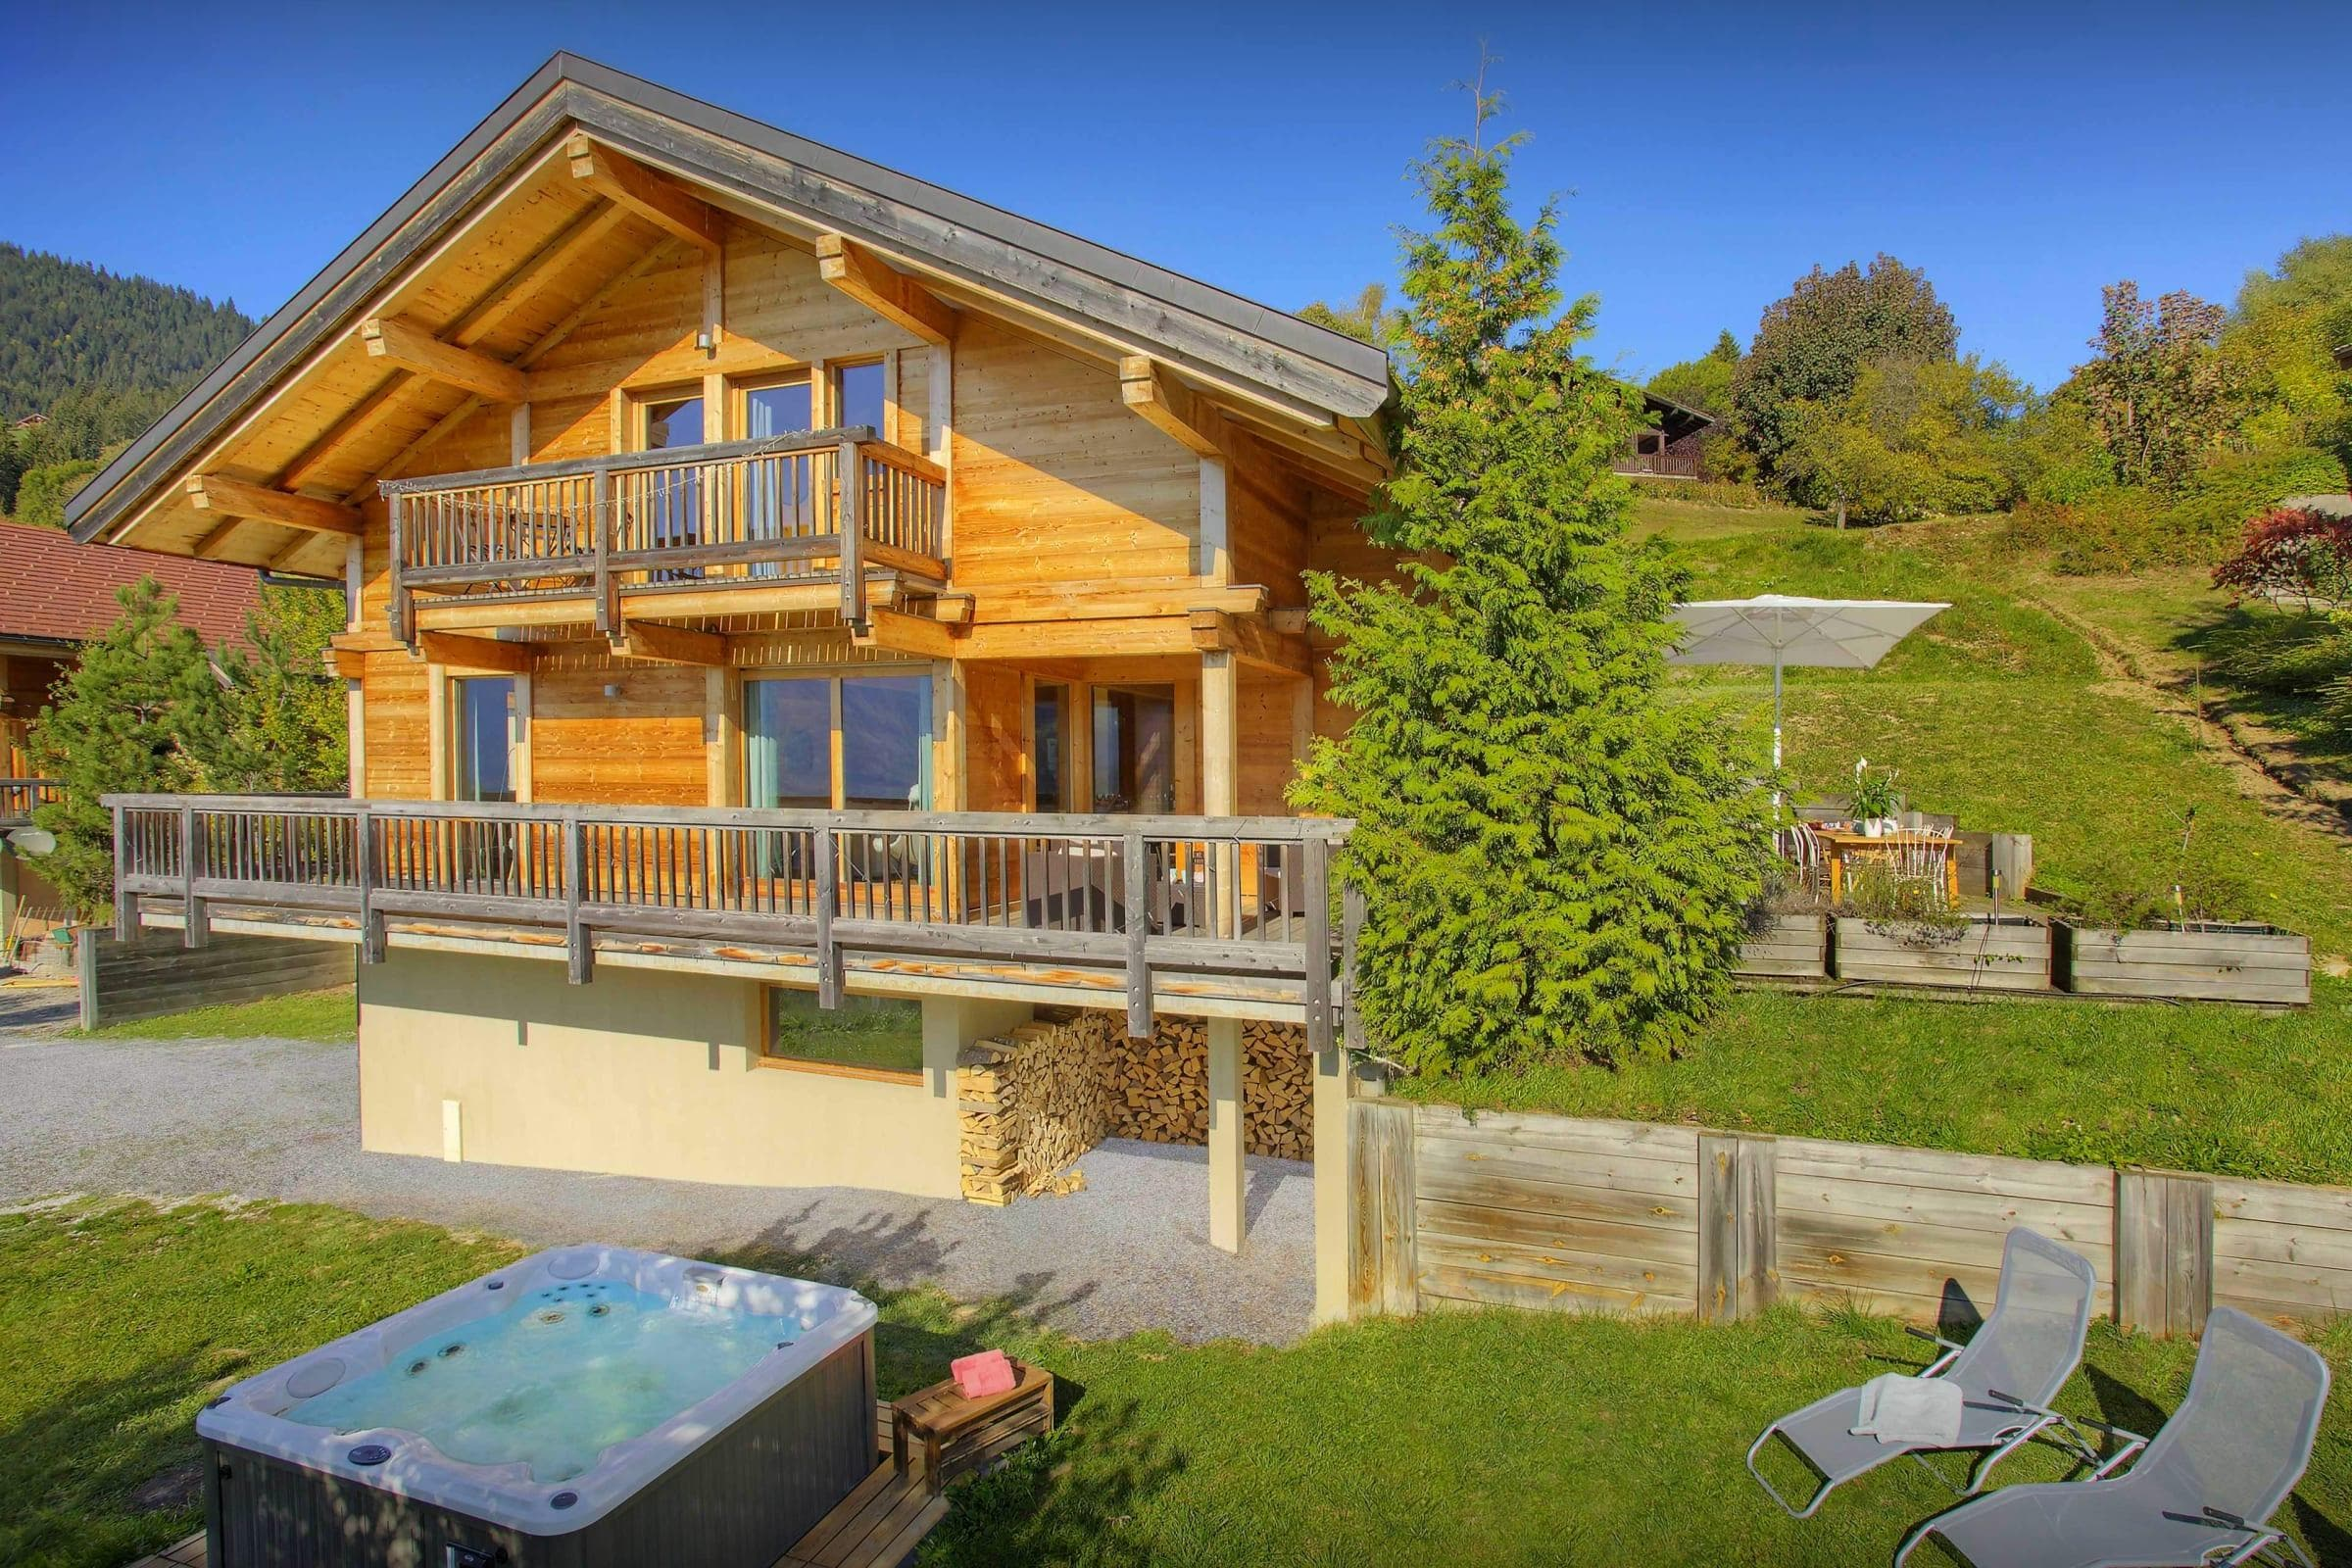 Property Image 2 - Spacious Mountain Chalet With Hot Tub